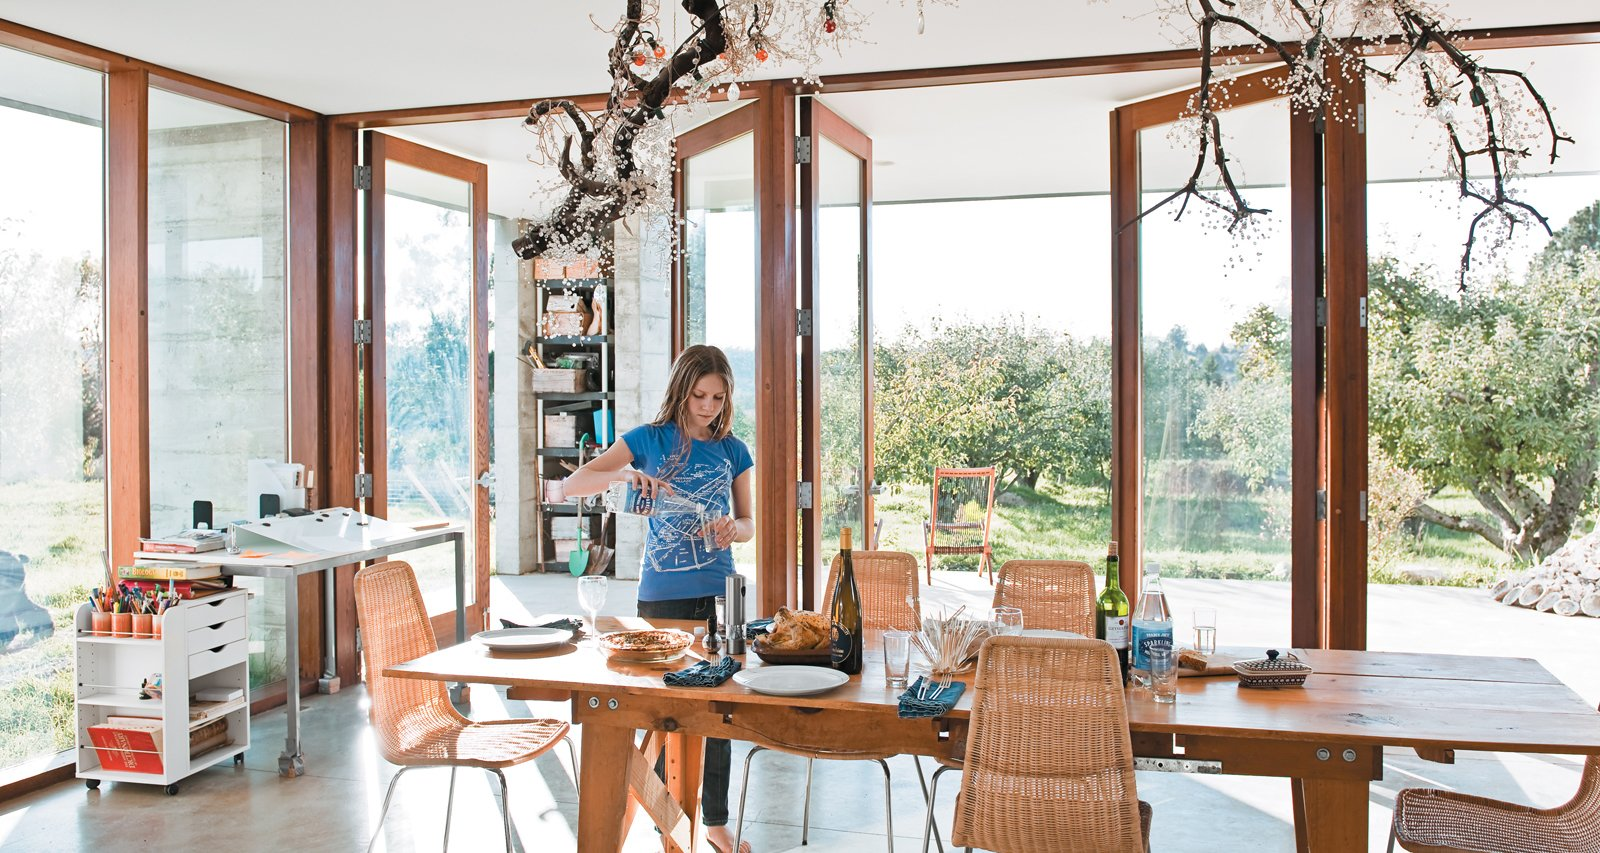 Photo 1 of 18 in A Sonoma Prefab That Celebrates a Family's Passion for Cooking